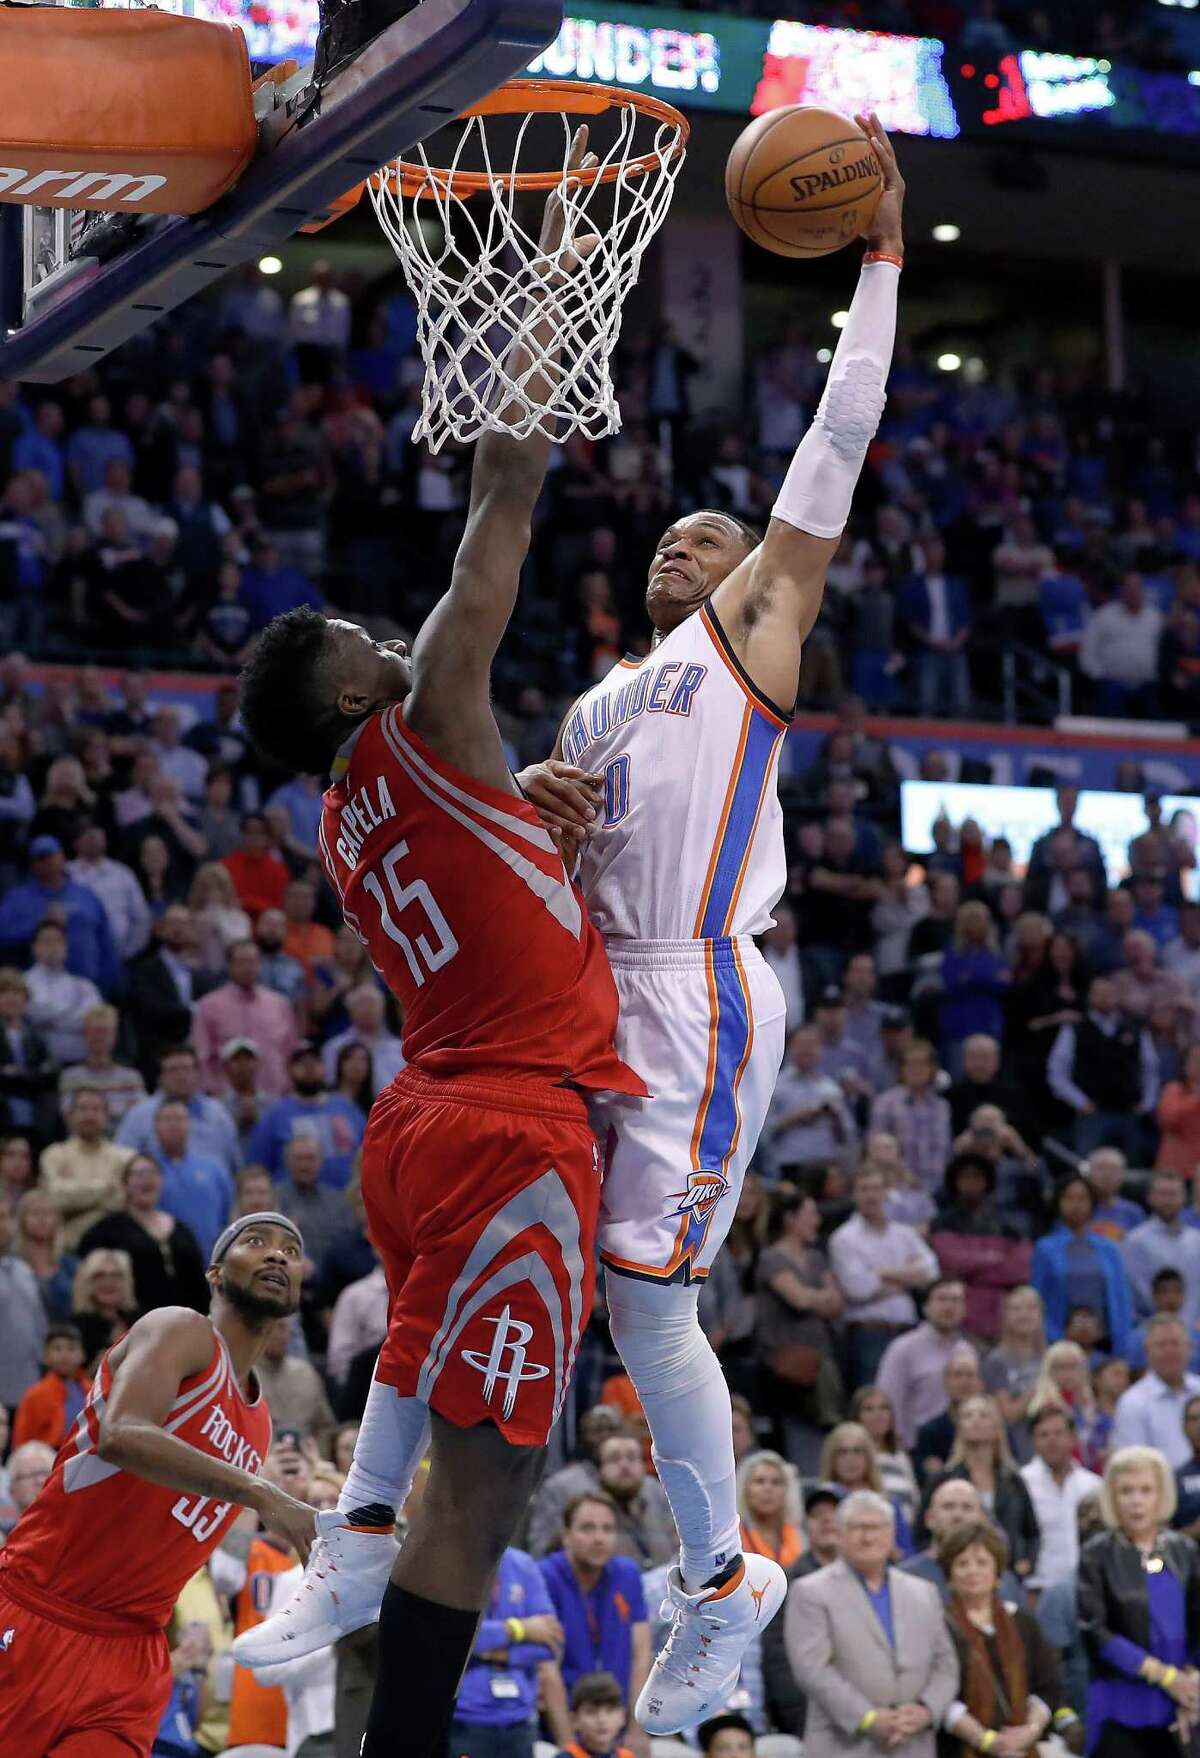 In its last two minute report from Wednesday's Rockets-Thunder game, the NBA ruled the Rockets should have had the ball instead of the Thunder on this play where Russell Westbrook scored the game-clinching dunk.